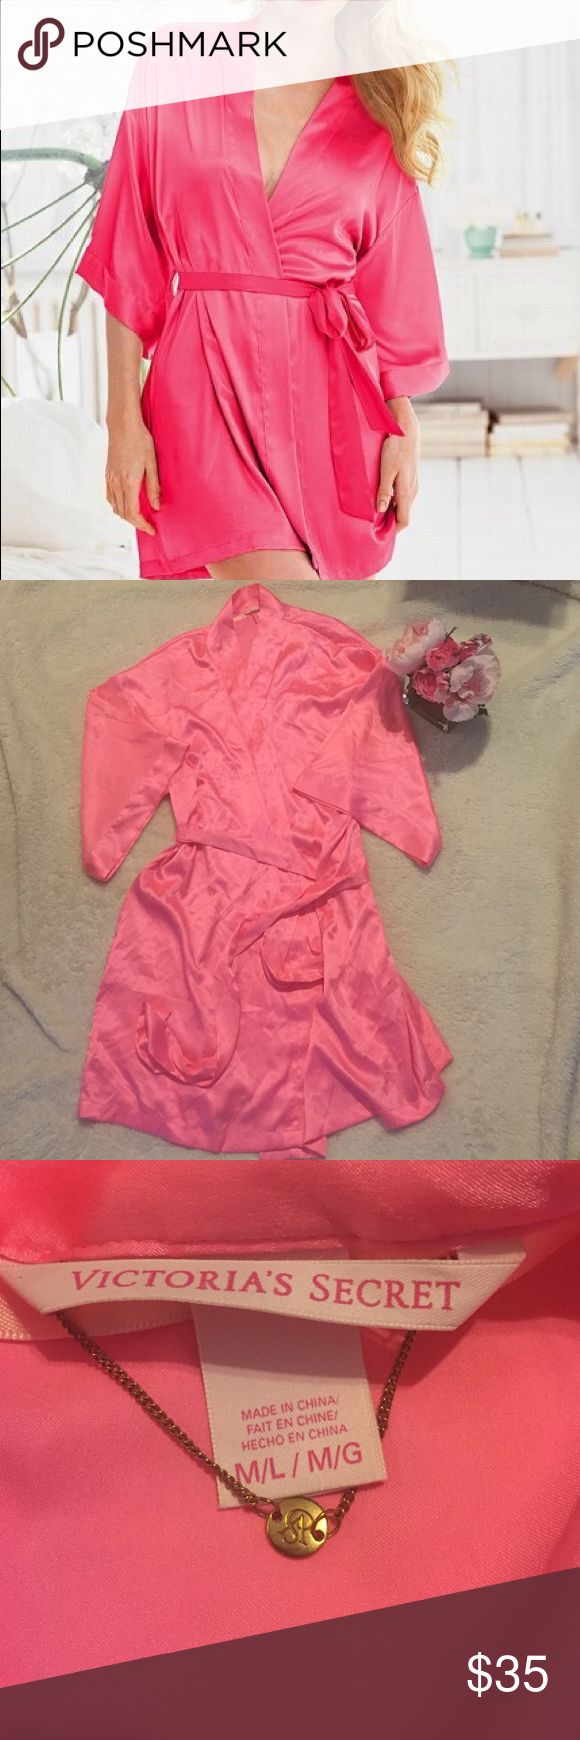 NWOT Victoria's Secret pink silk robe size M/L Gorgeous pink silk robe by Victoria's Secret never worn in perfect condition. Size M/L- has ties inside and outside and pockets. Sleeves are 3/4 length. A gorgeous piece ❤️ purchased from Victoria's Secret full price, sadly I never wore it. Victoria's Secret Intimates & Sleepwear Robes